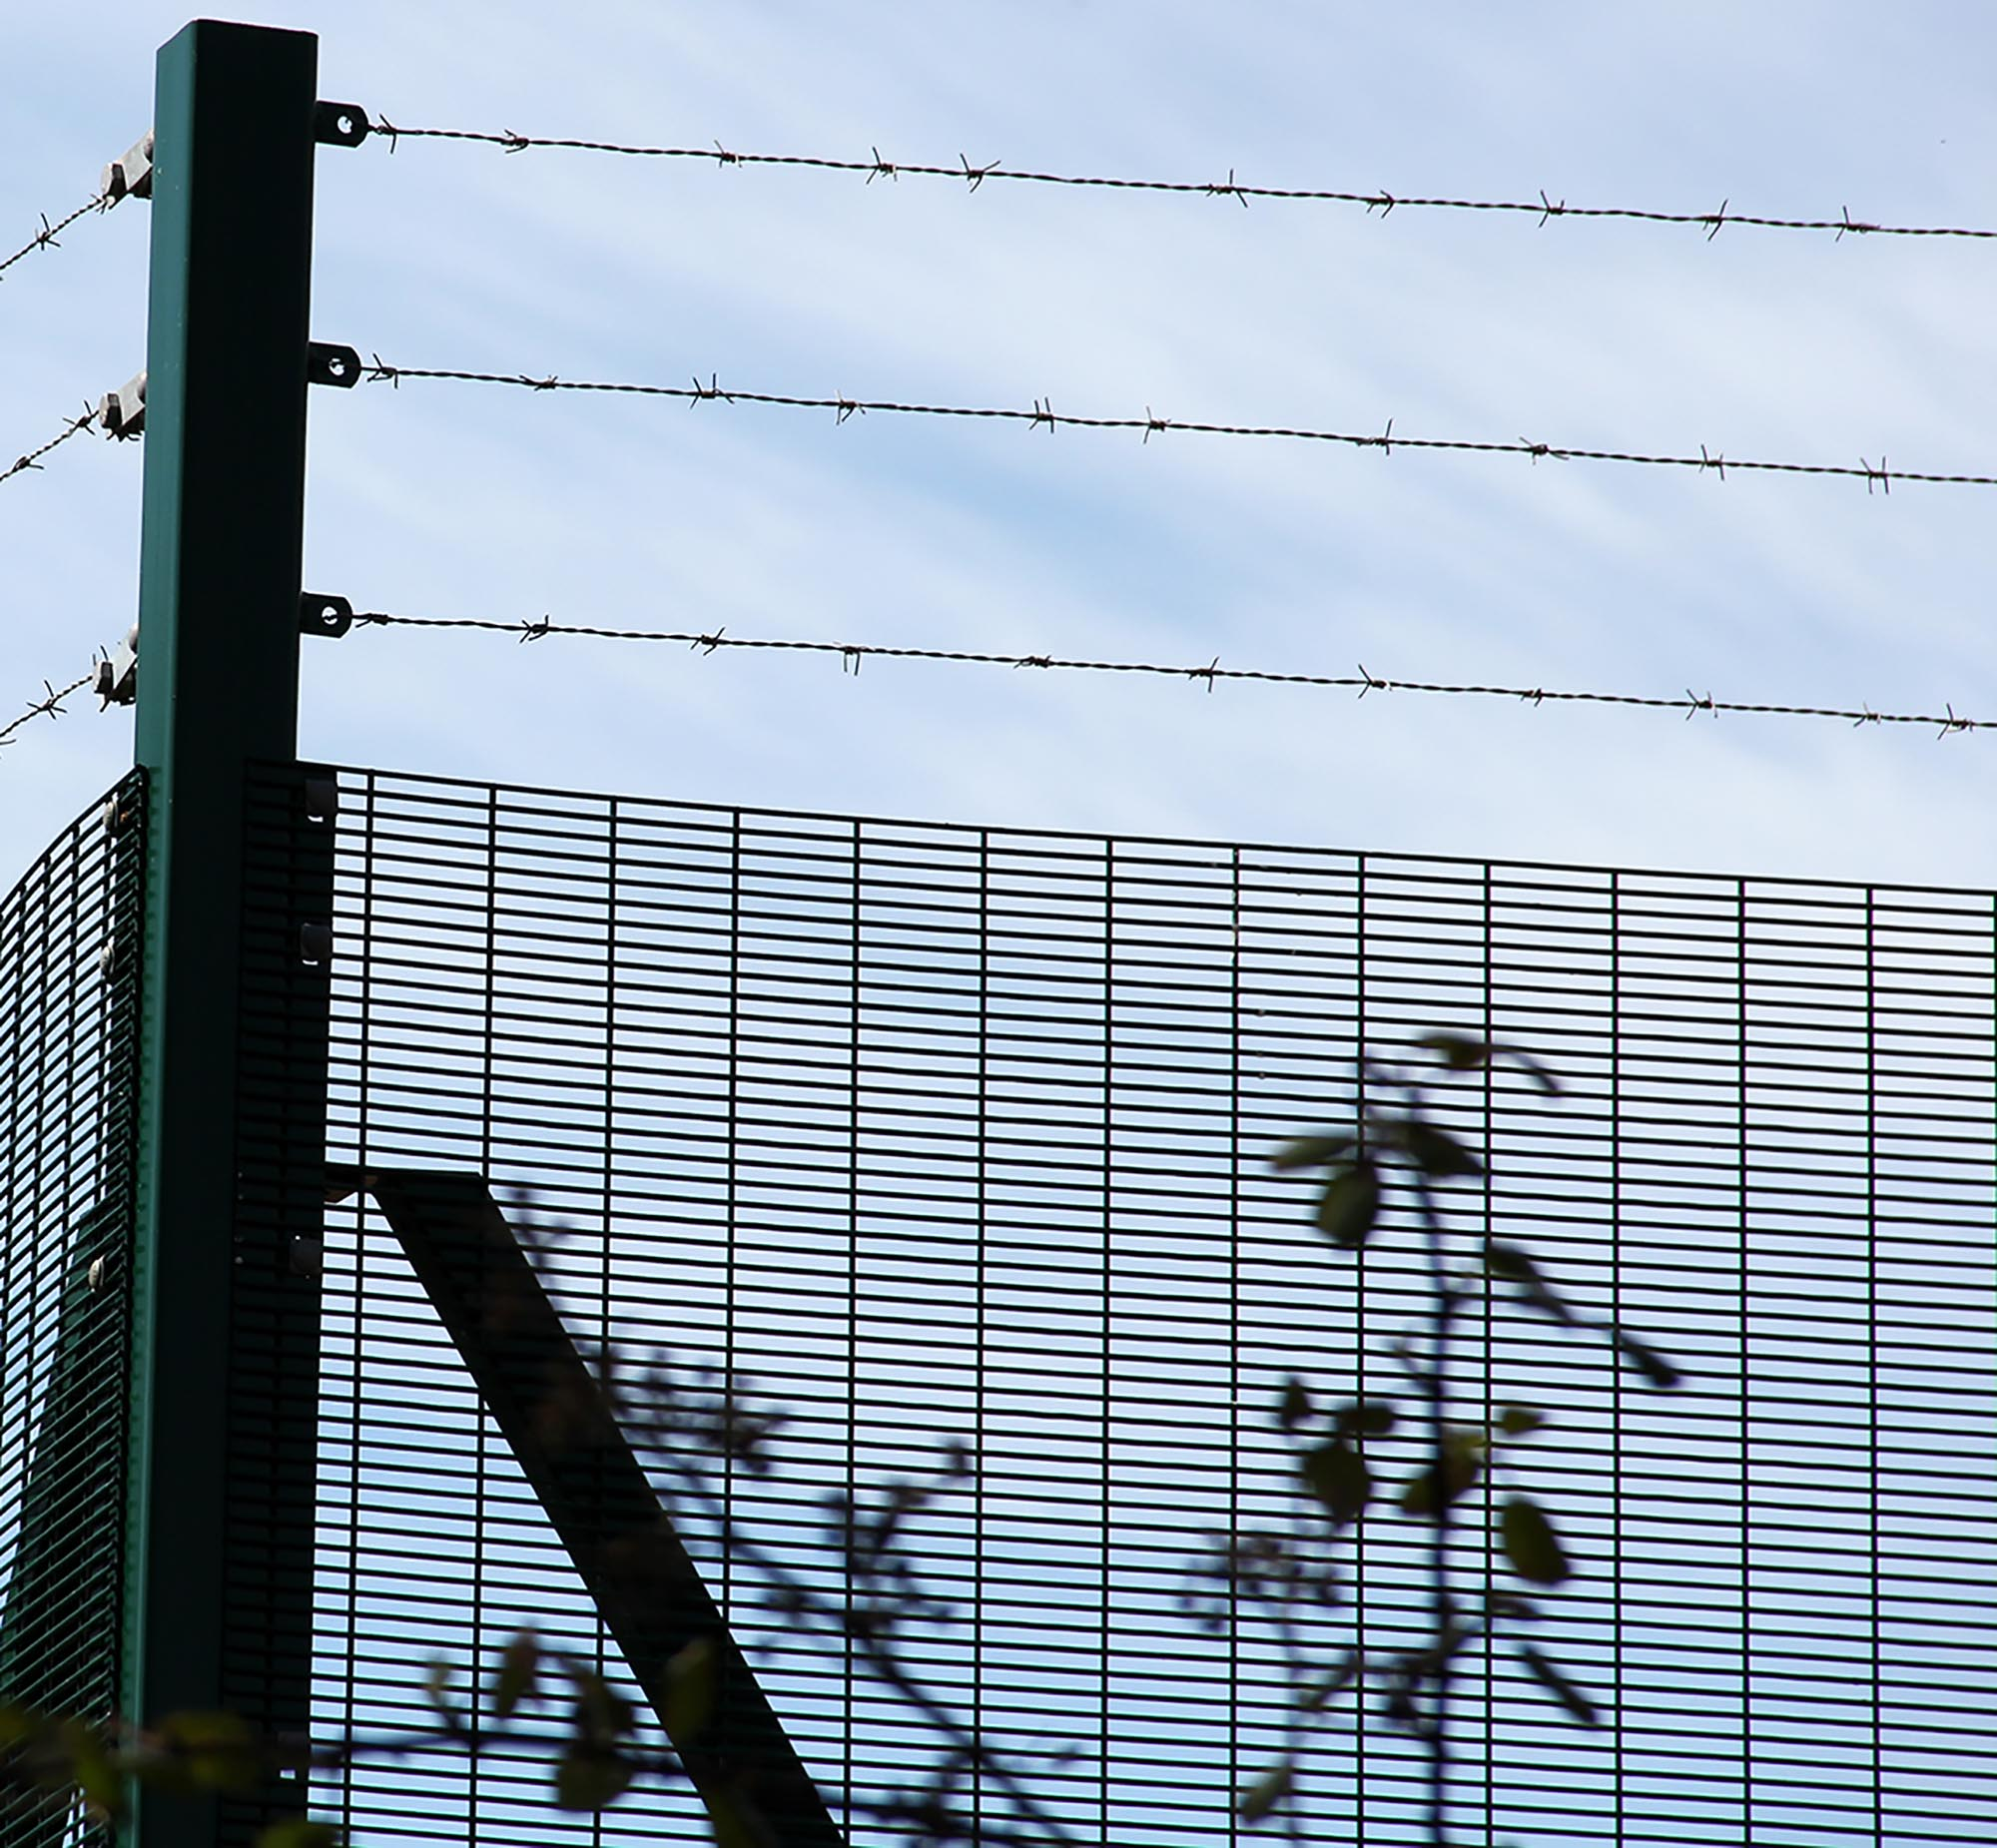 358-Rigid-Mesh-High-Security-Fencing-Securus-Barbed-Wire - CLD Fencing